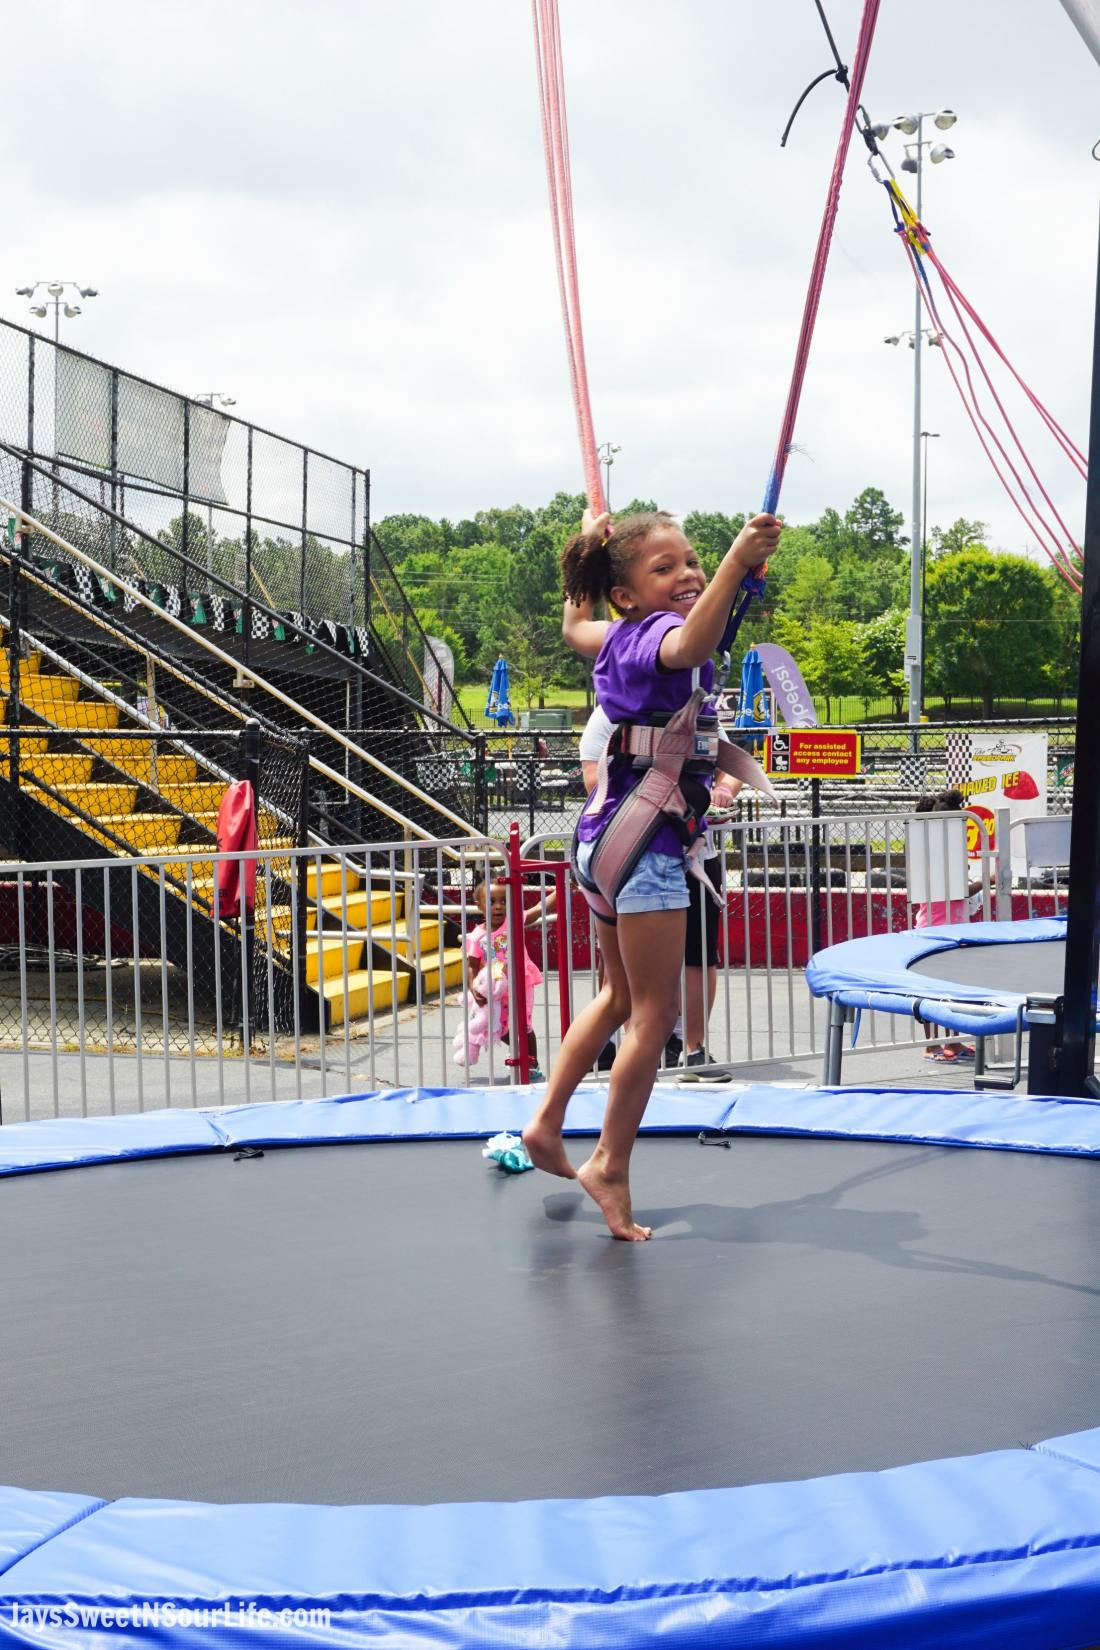 SpeedPark - Visit Cabarrus County Track Bungee Jumping Girl. A Large Families Adventure Guide To Cabarrus County - North Carolina - via JaysSweetNSourLife.com.